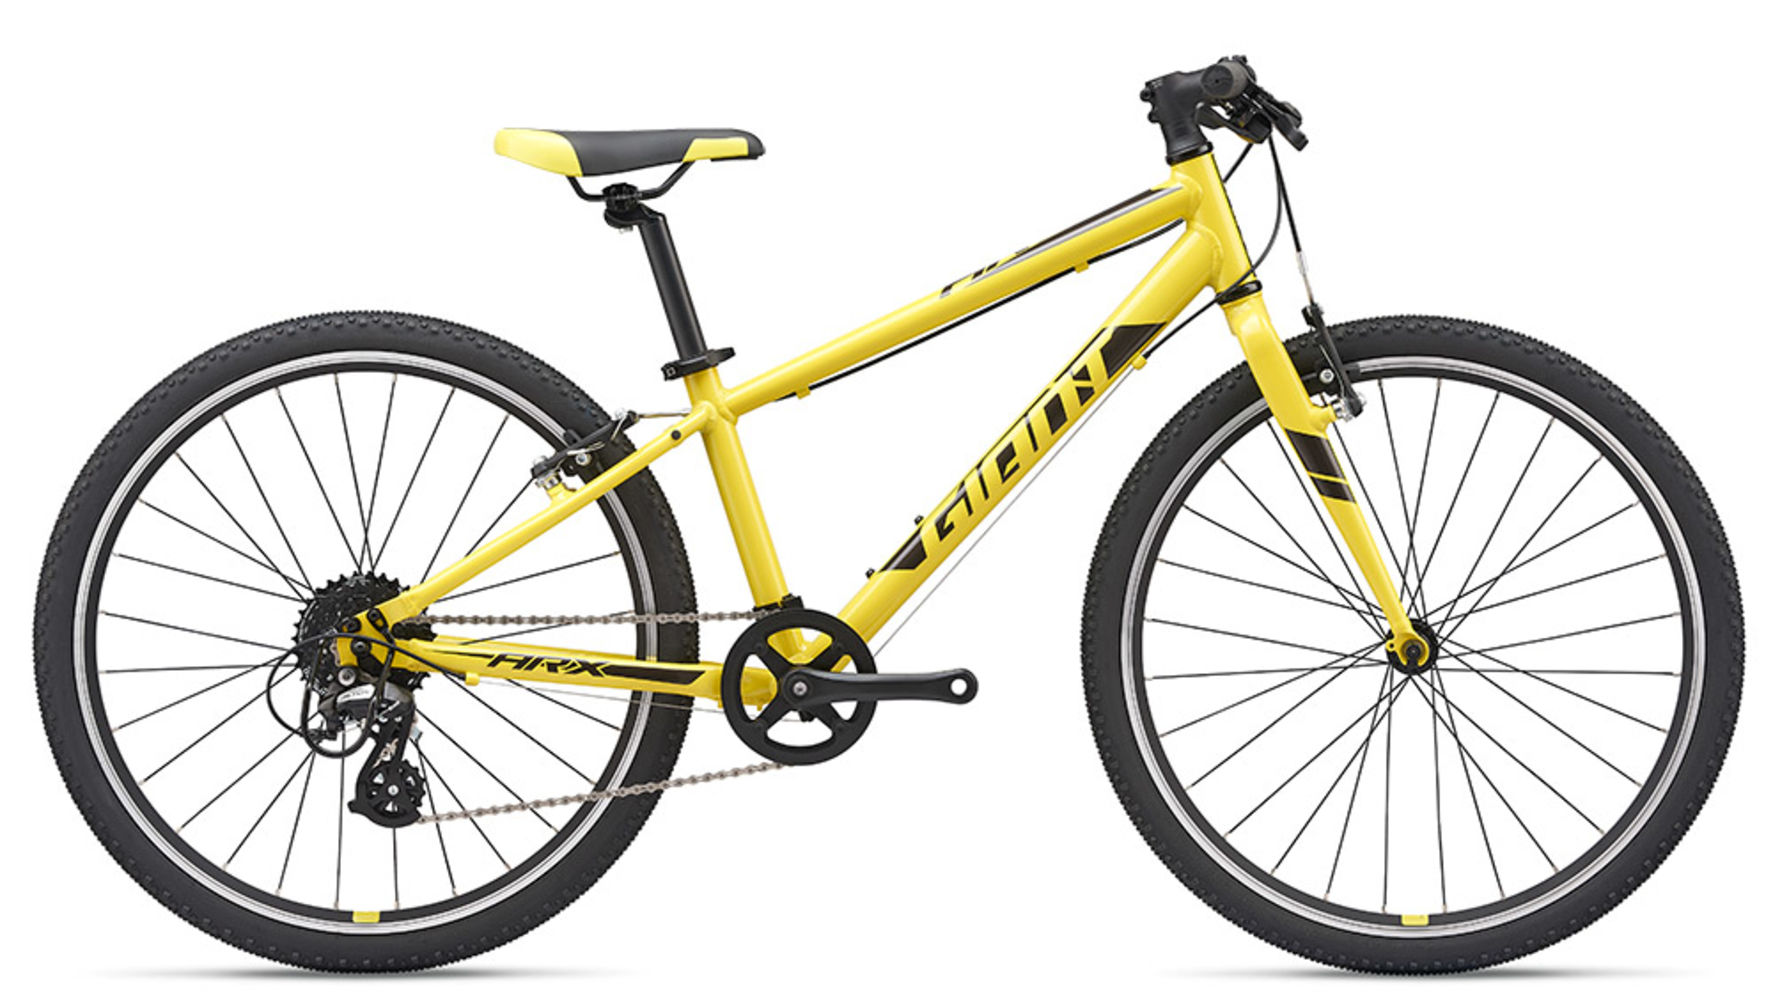 2019 Giant Arx 24 Childs Bike In Yellow 369 00